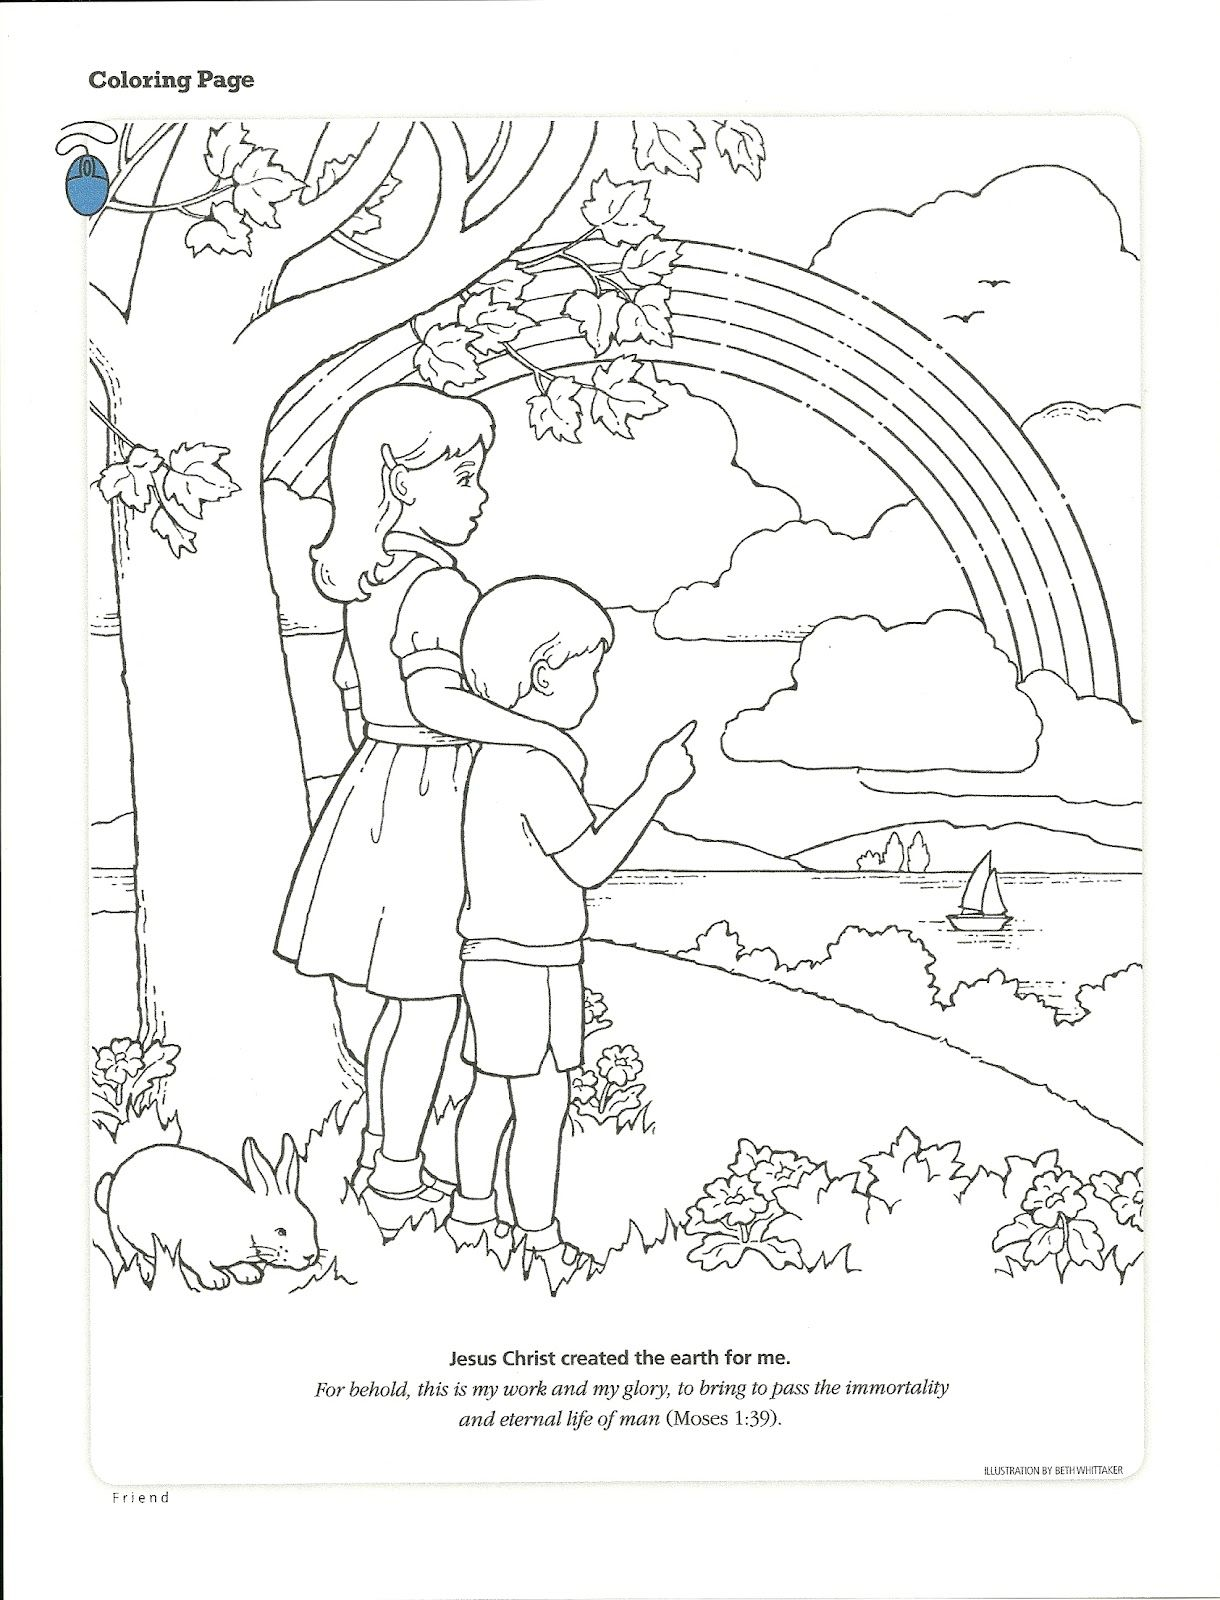 Primary 2 Lesson 9 Sunday School Coloring Pages Coloring Pages